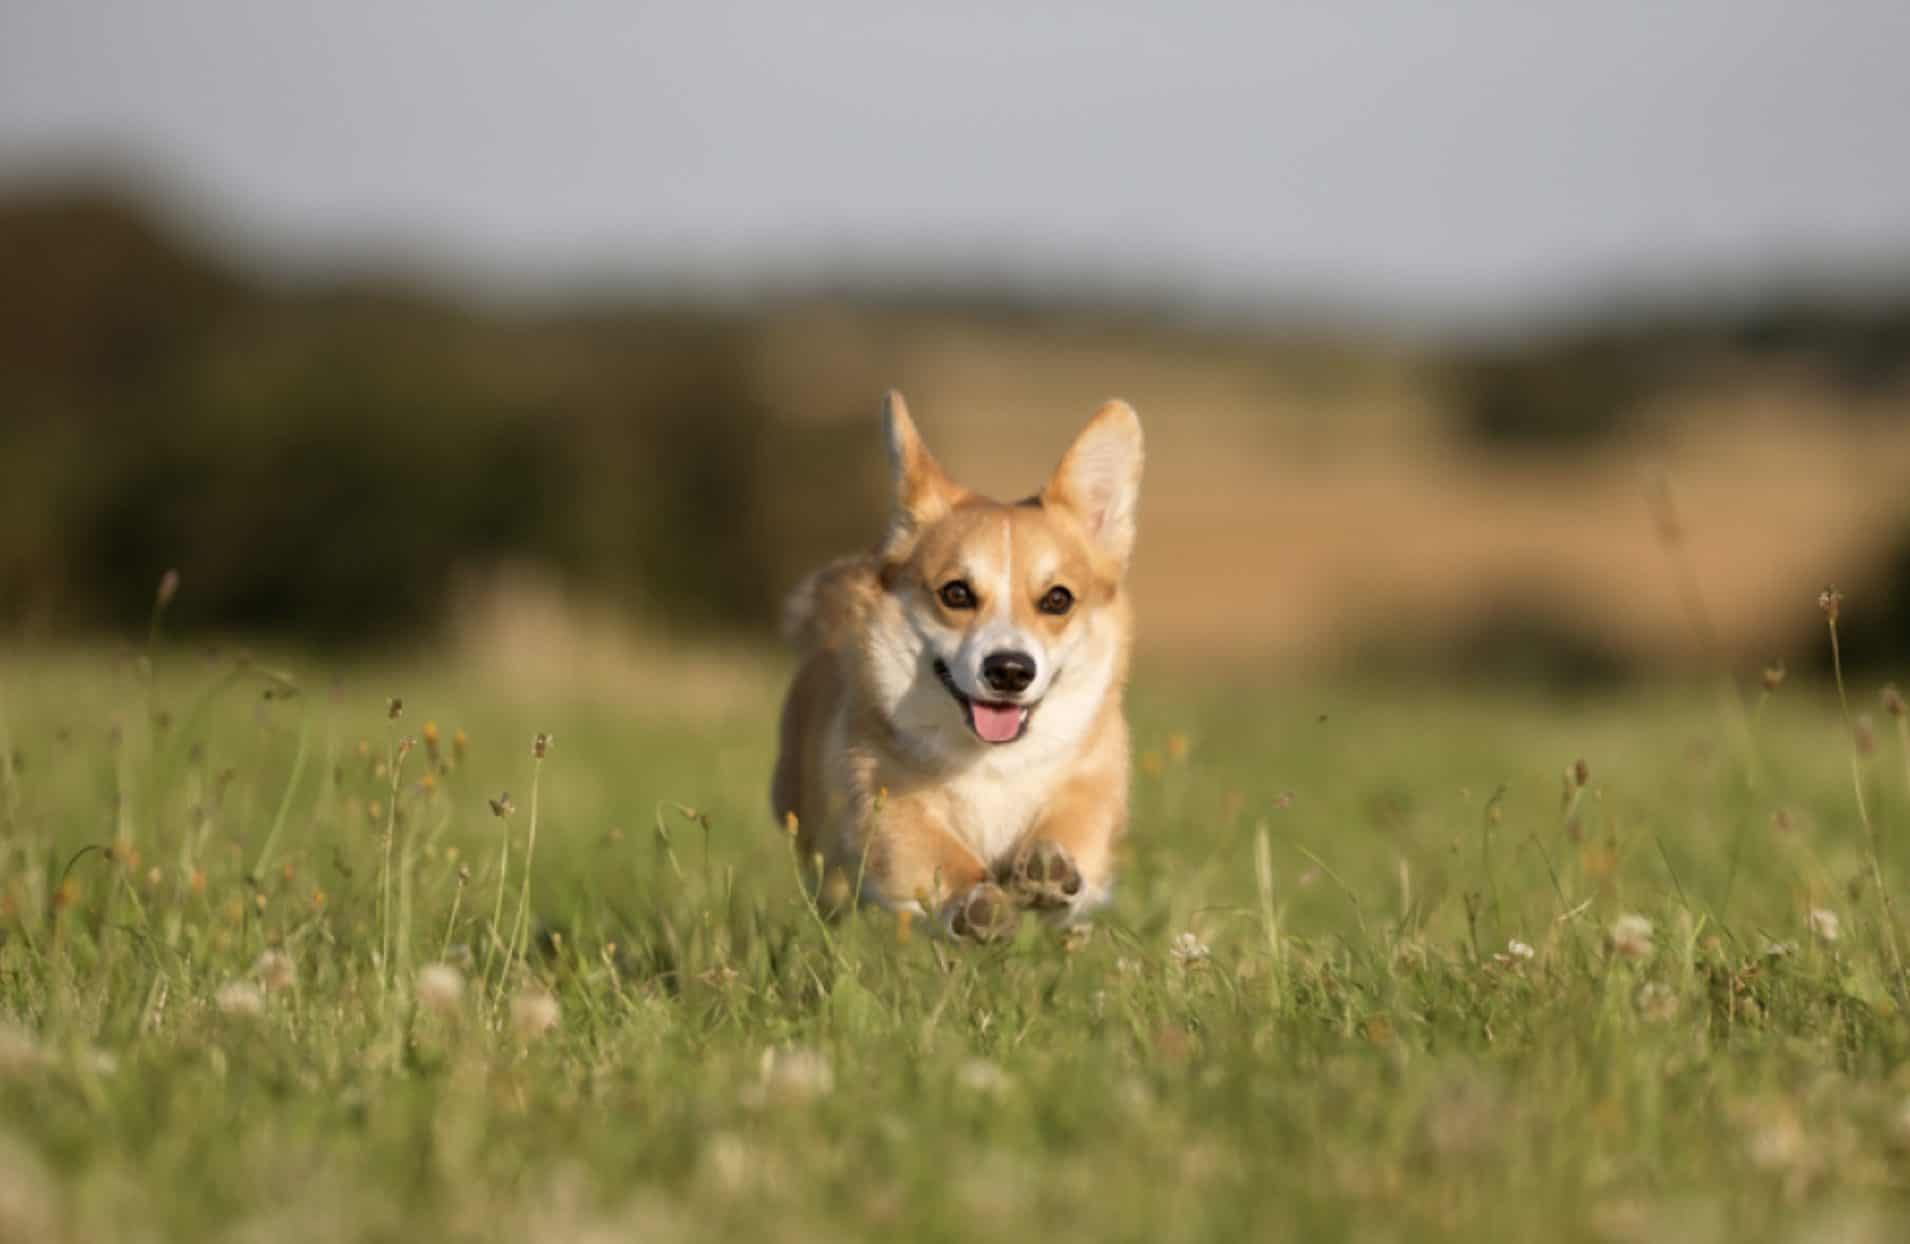 A Pembroke welsh corgi as it runs through the fields.